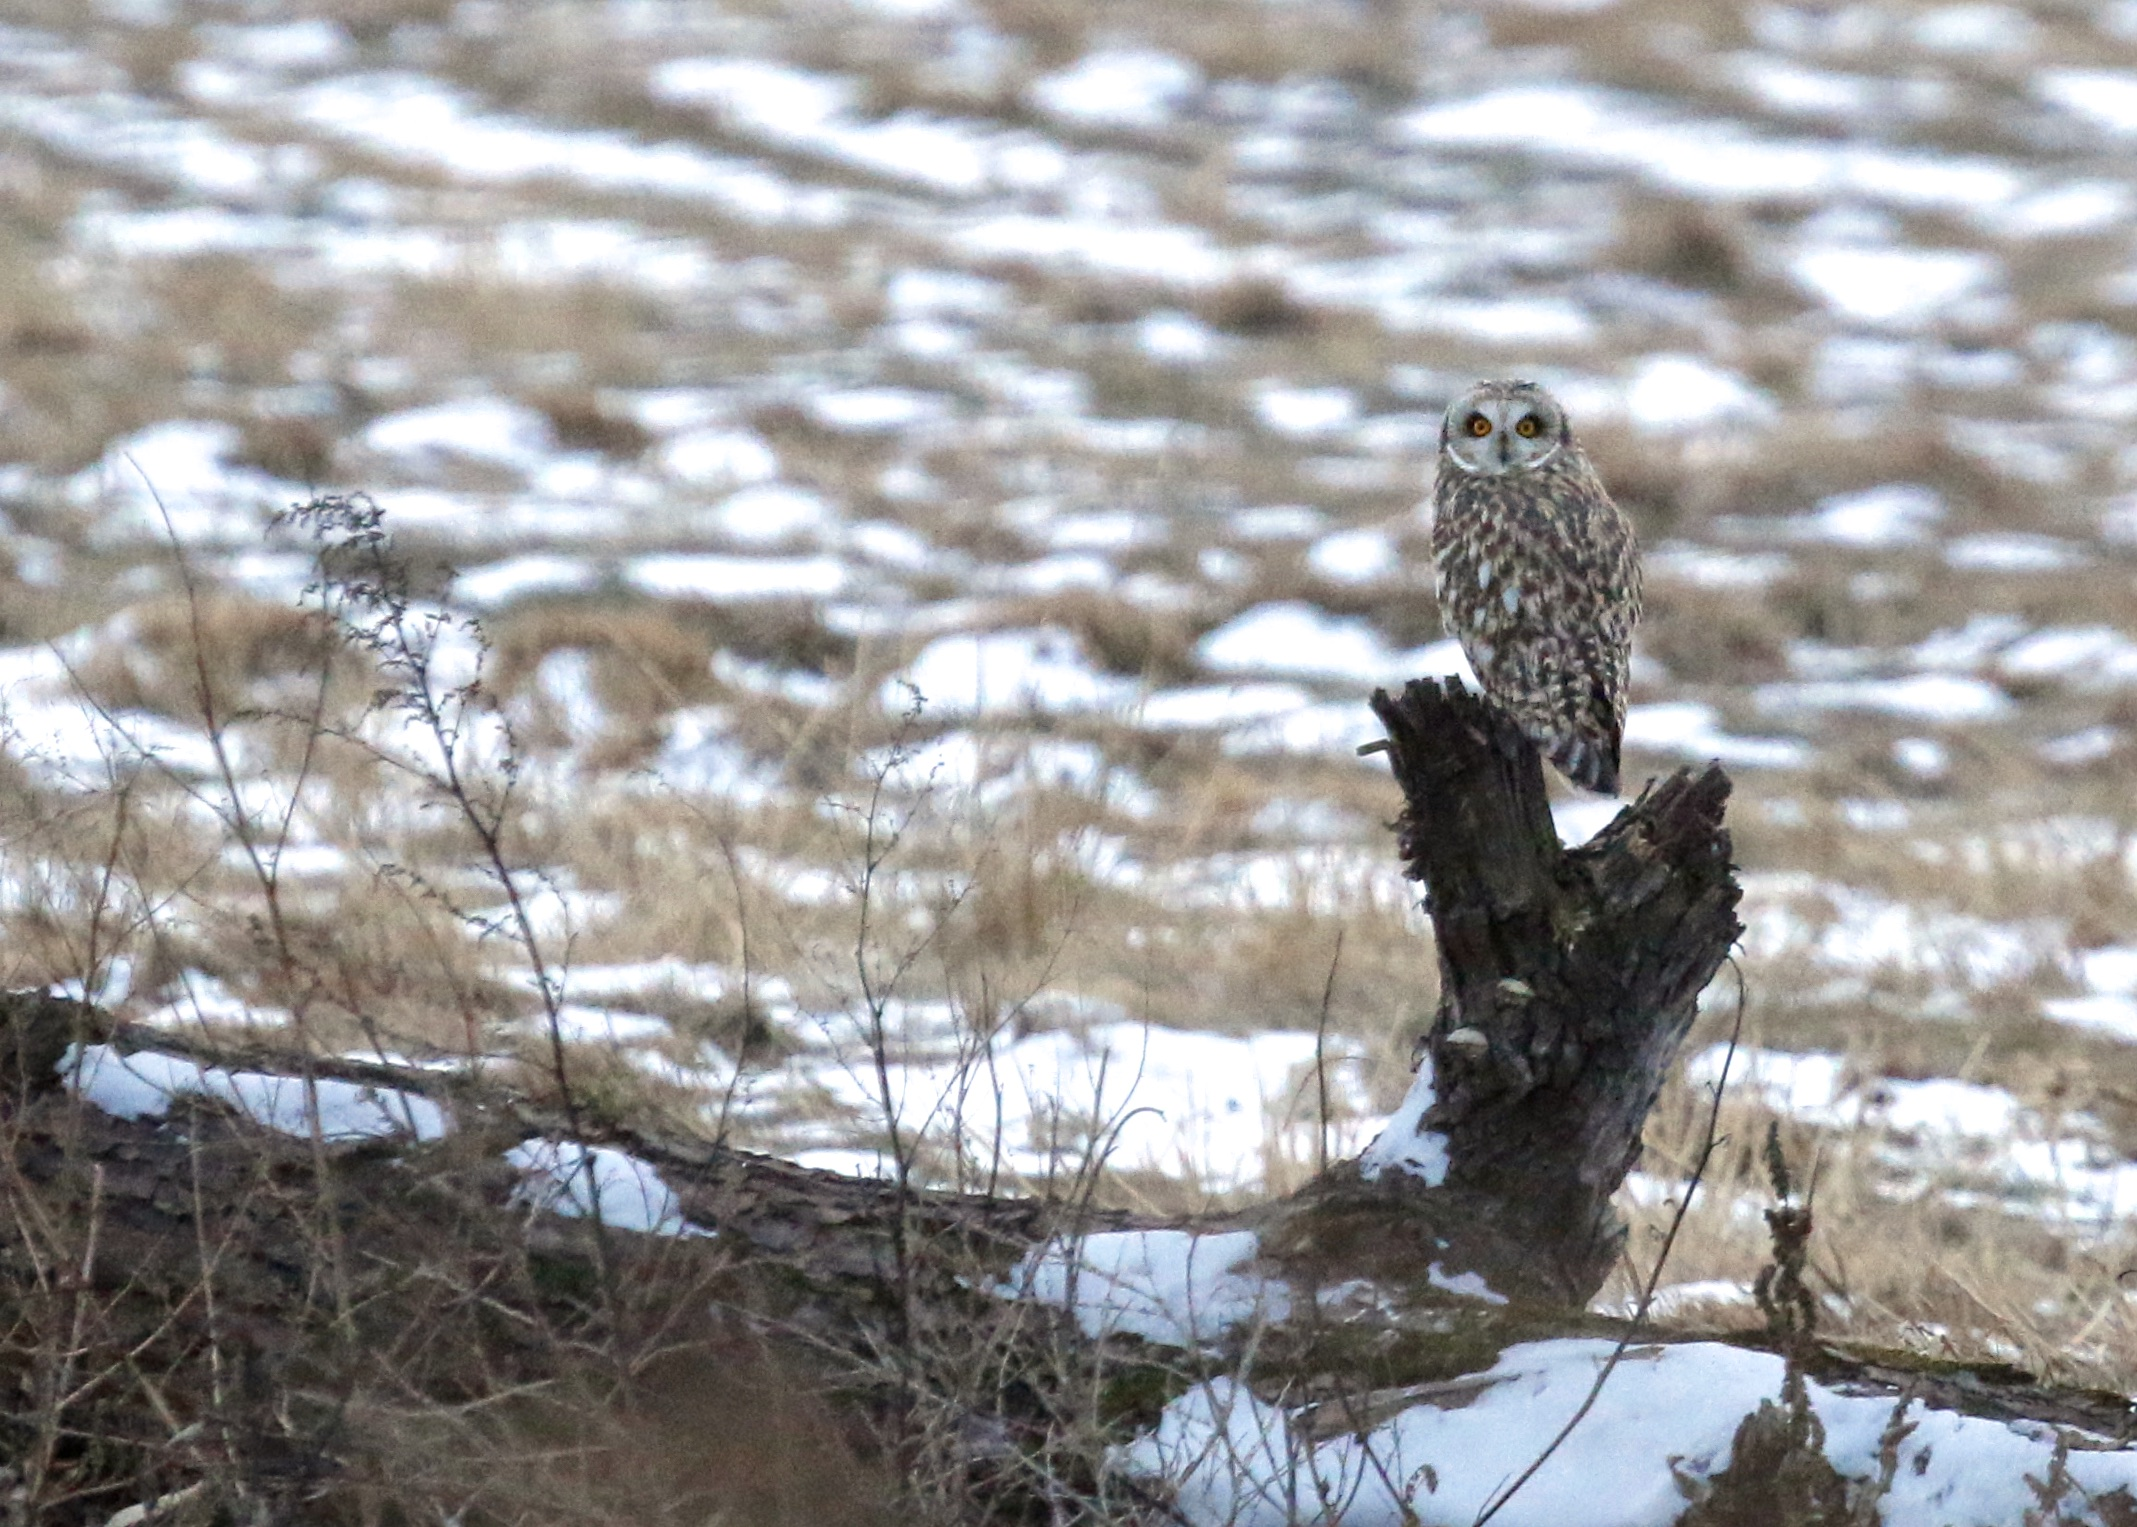 Short-eared Owl in Orange County, NY 1/11/15.